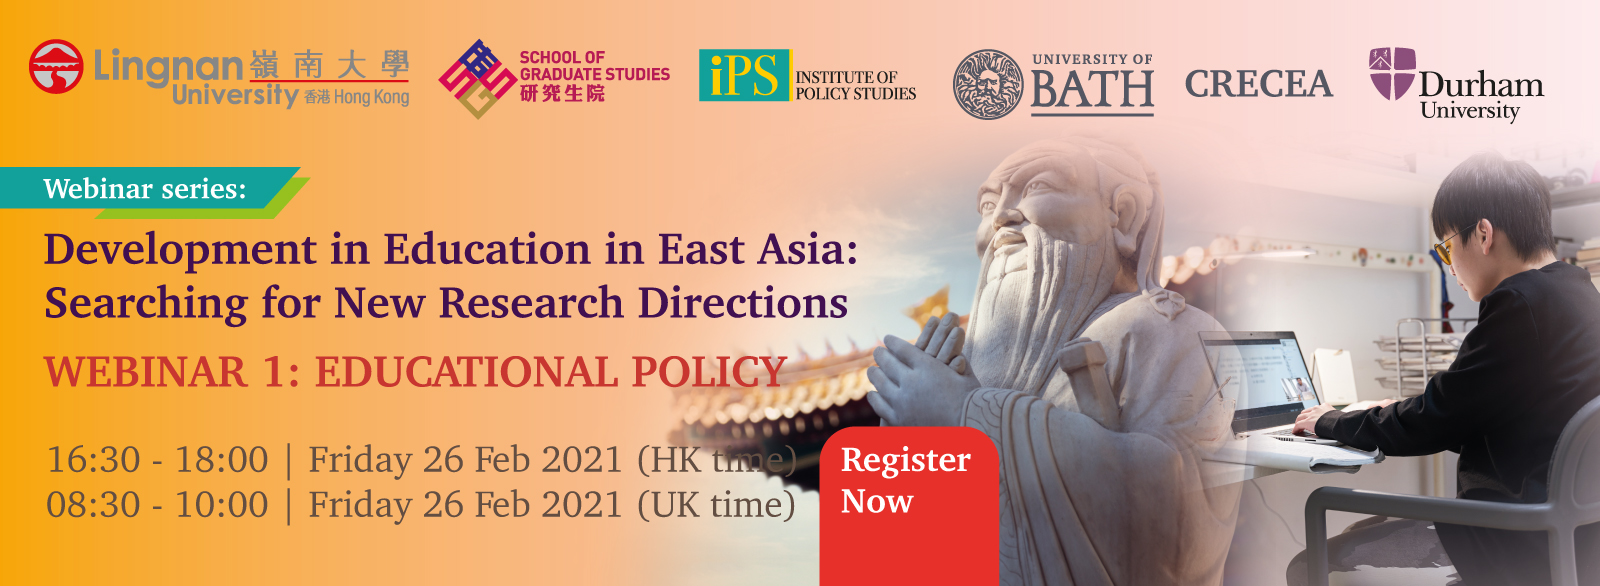 Development in Education in East Asia:  Searching for New Research Directions - Webinar 1